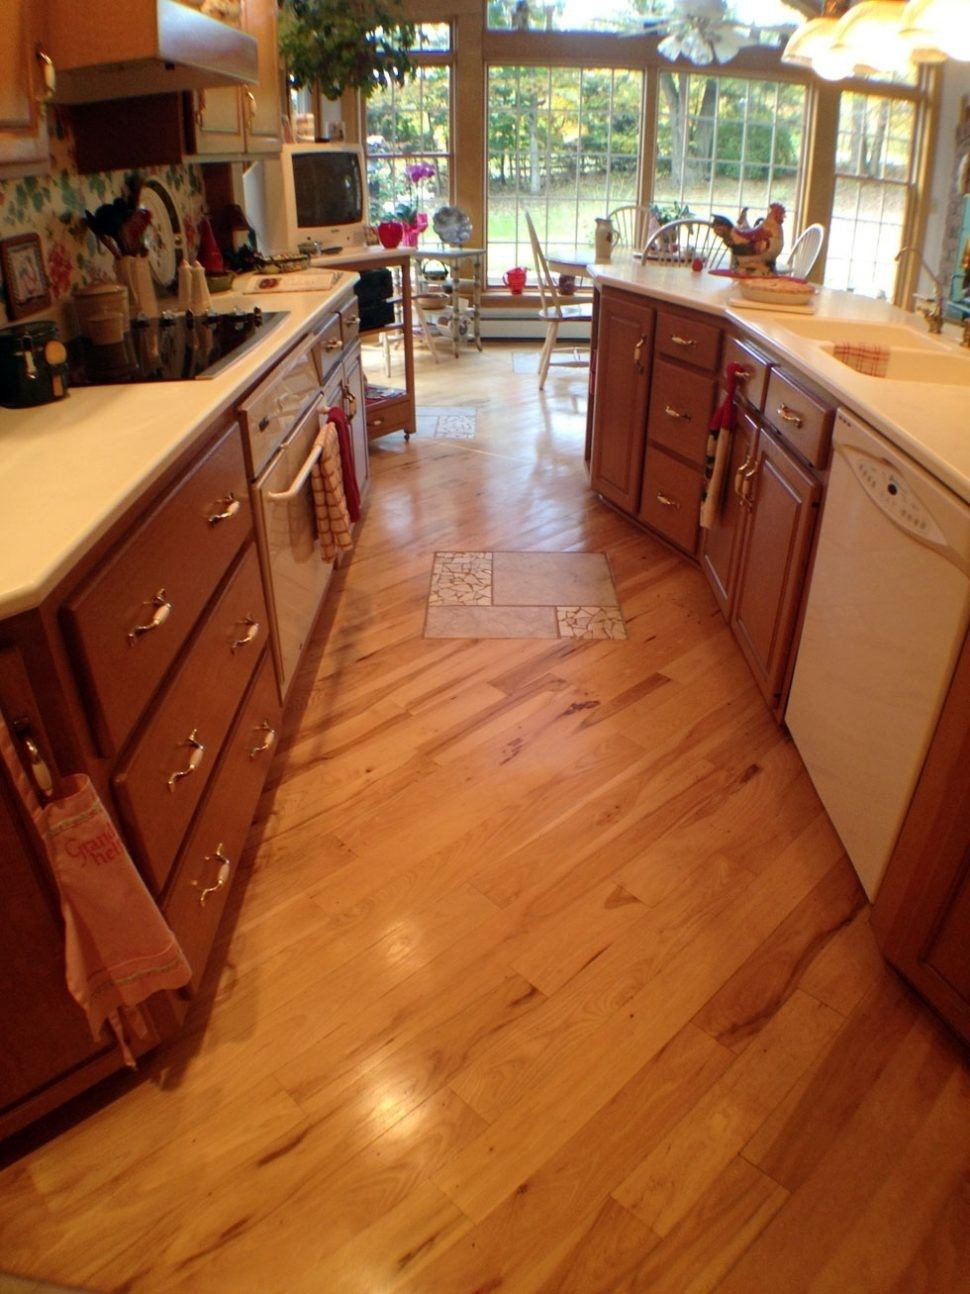 hardwood flooring sizes of 40 flooring installation cost per square foot concept within hardwood flooring cost per sq ft fresh floor floor installod floors ideas of flooring installation cost